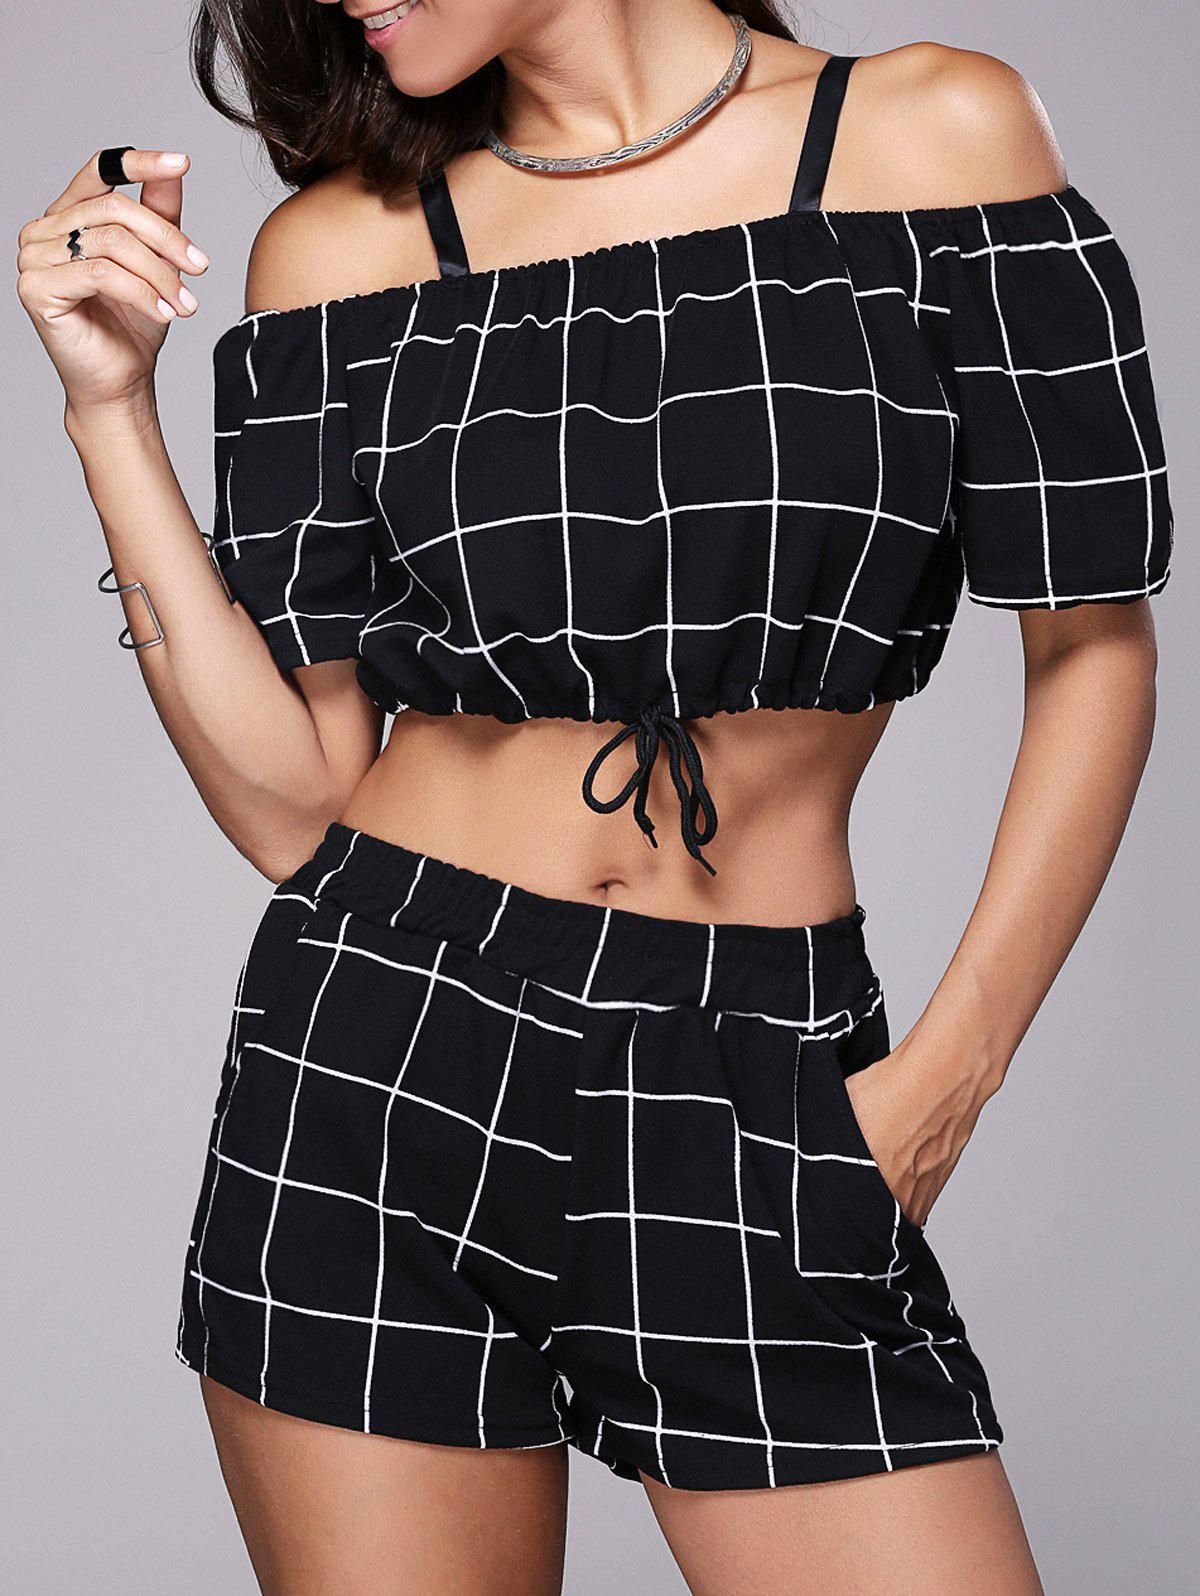 Checked Crop Top With Mini Short - BLACK XL